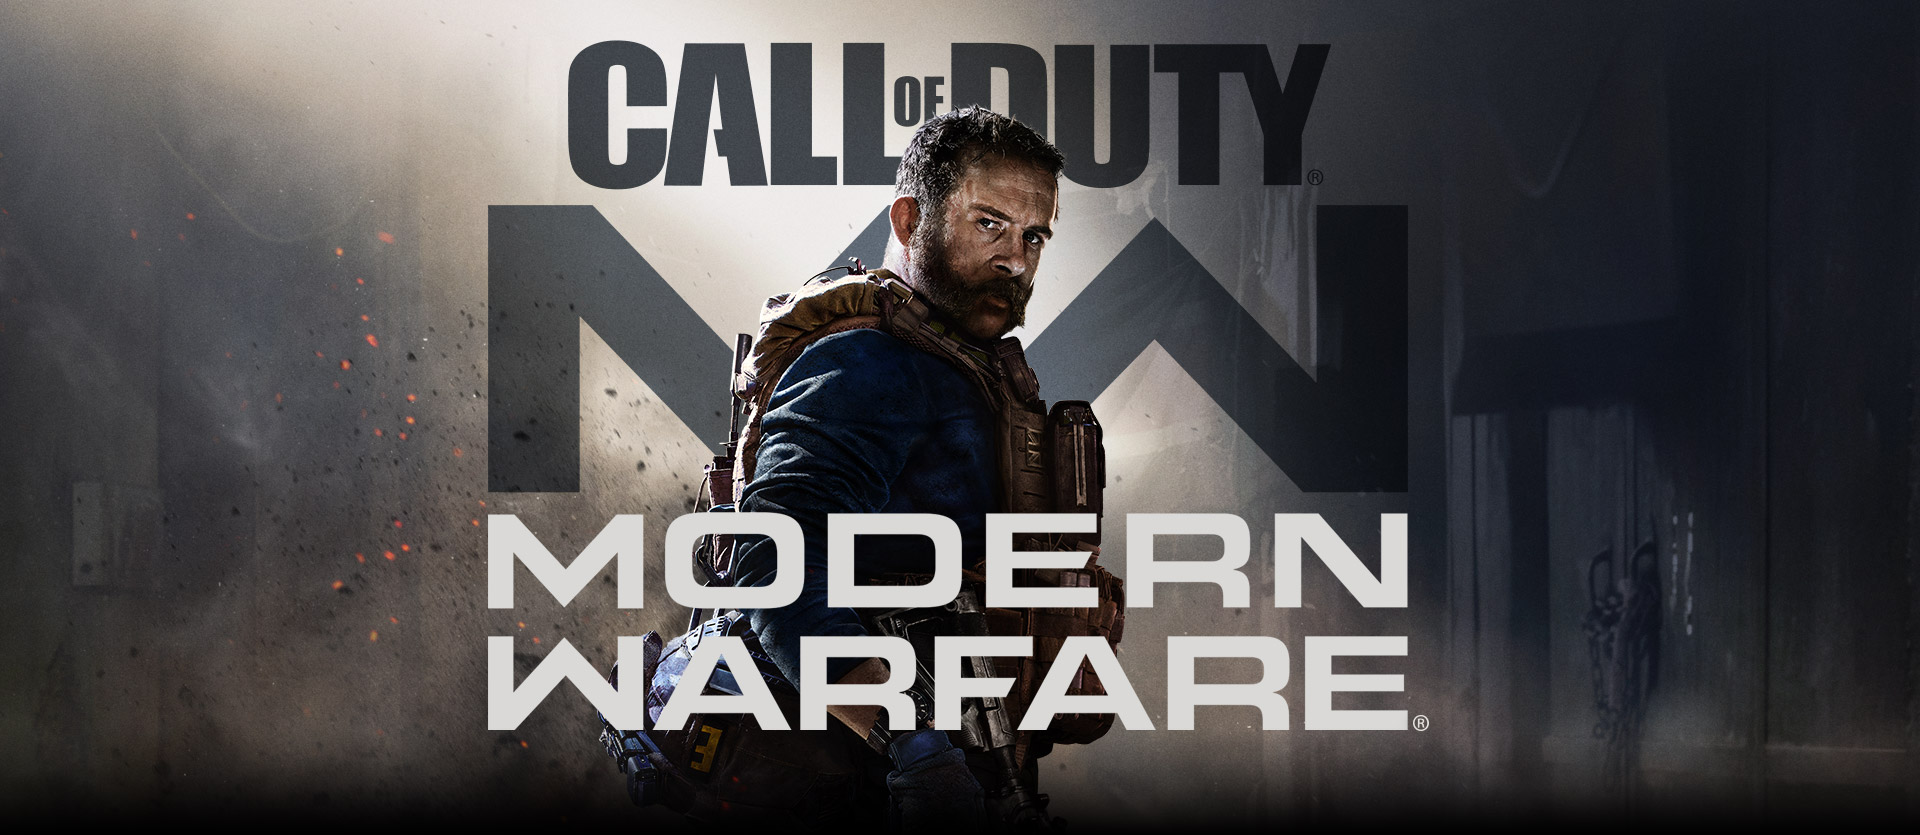 Logo di Call of Duty: Modern Warfare con il personaggio del Capitano Price in blu con giubbotto militare